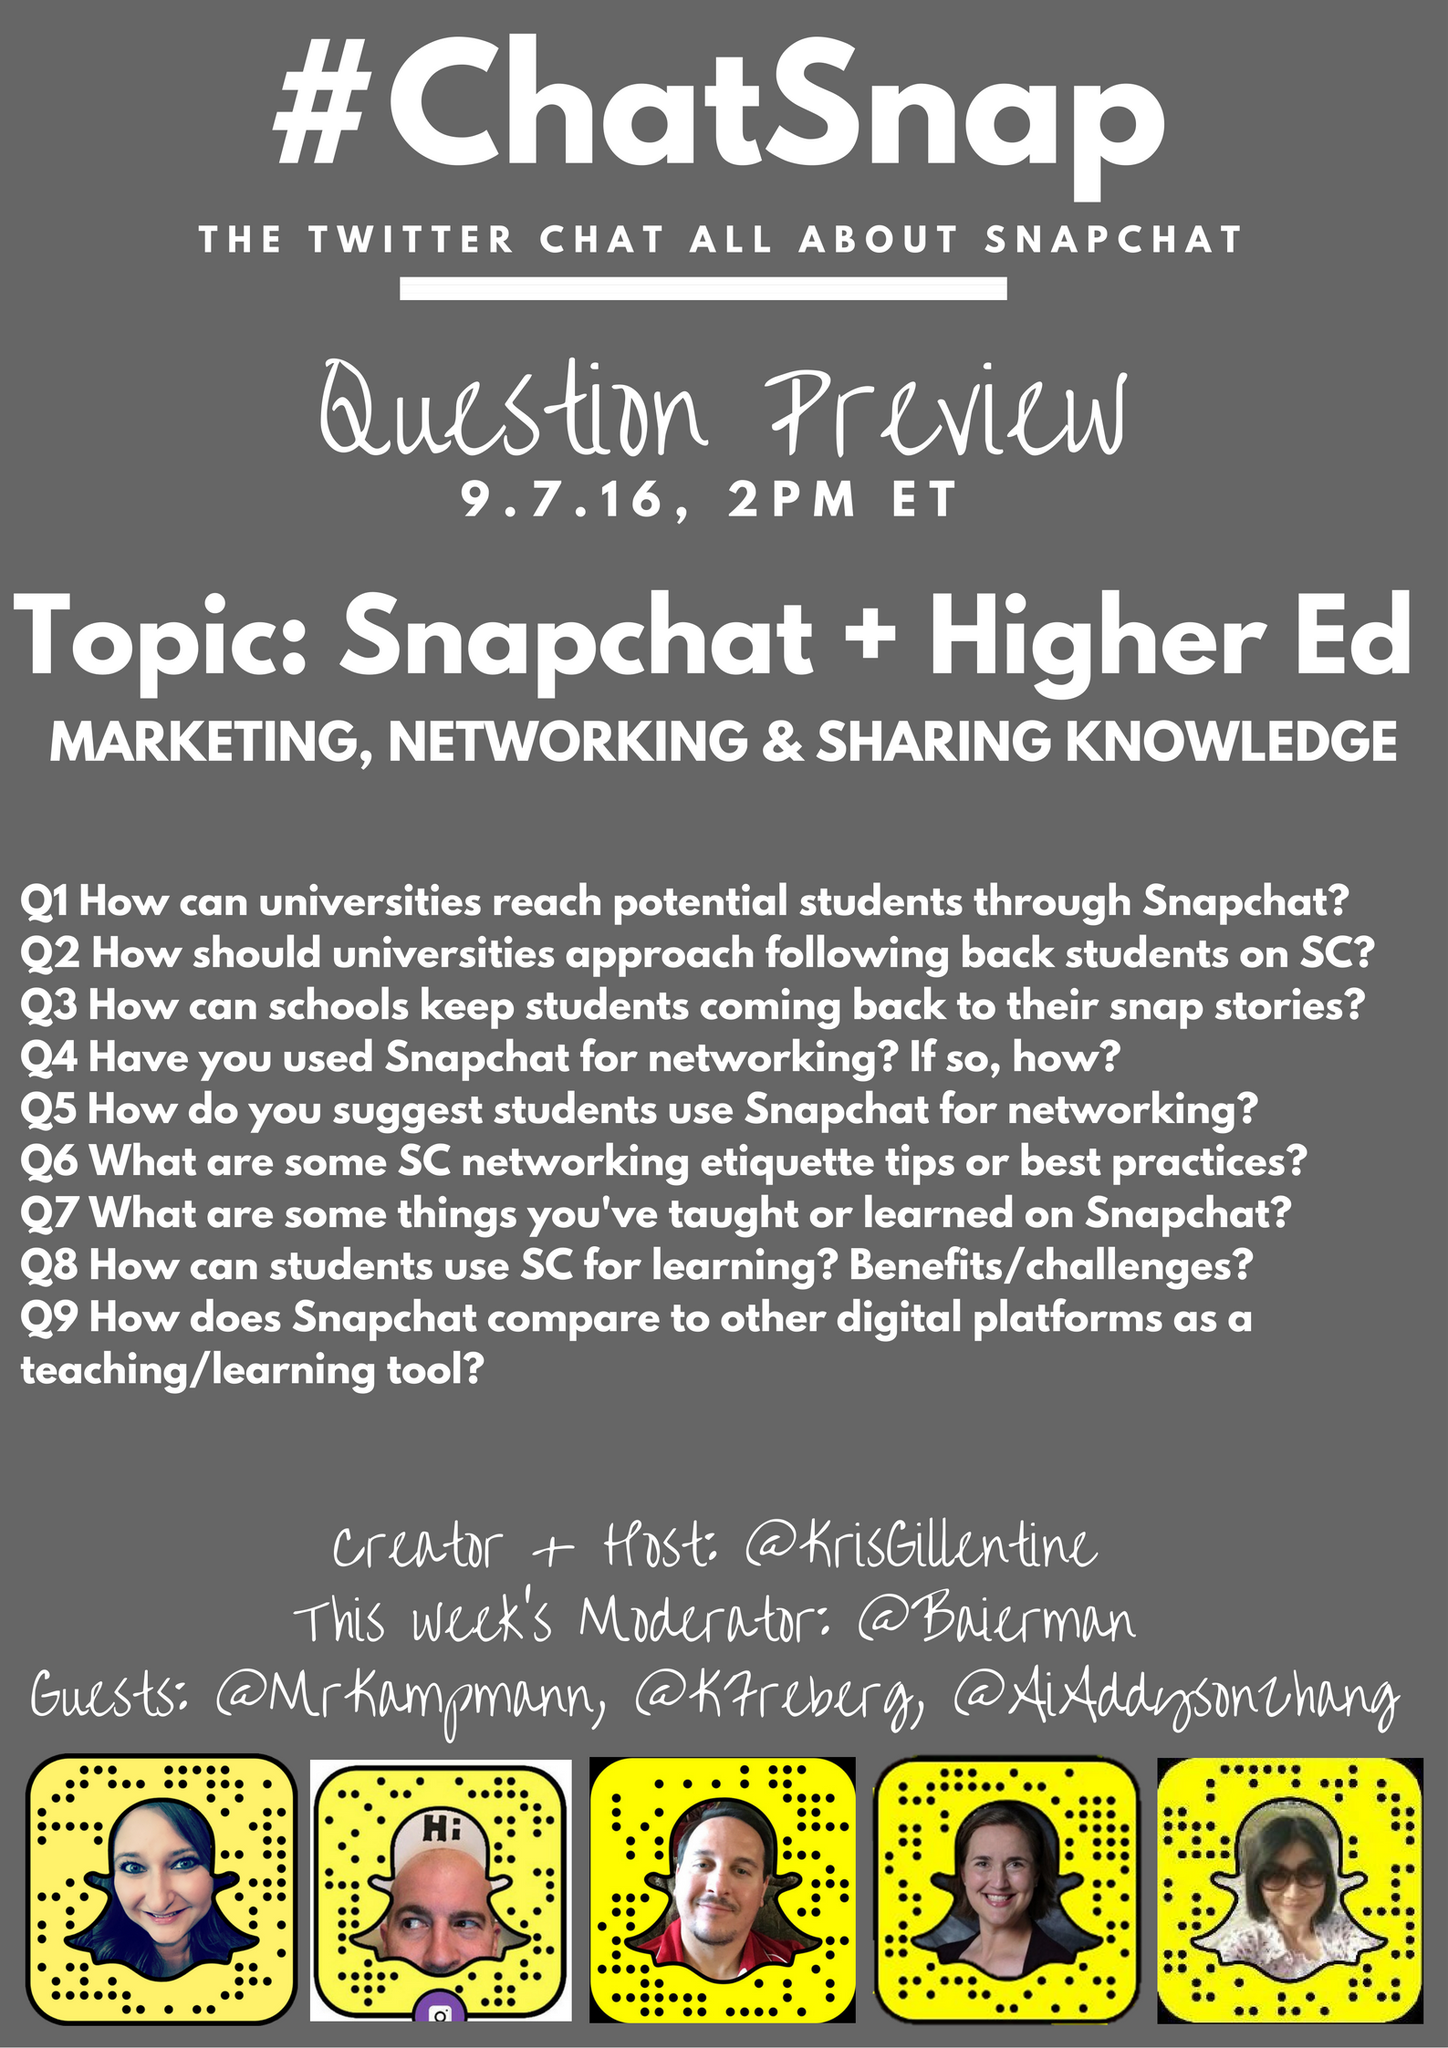 #ChatSnap starts in 5 minutes! Here's a look ahead at today's chat! @mrkampmann @aiaddysonzhang @kfreberg @Baierman https://t.co/bHjGuCt20h